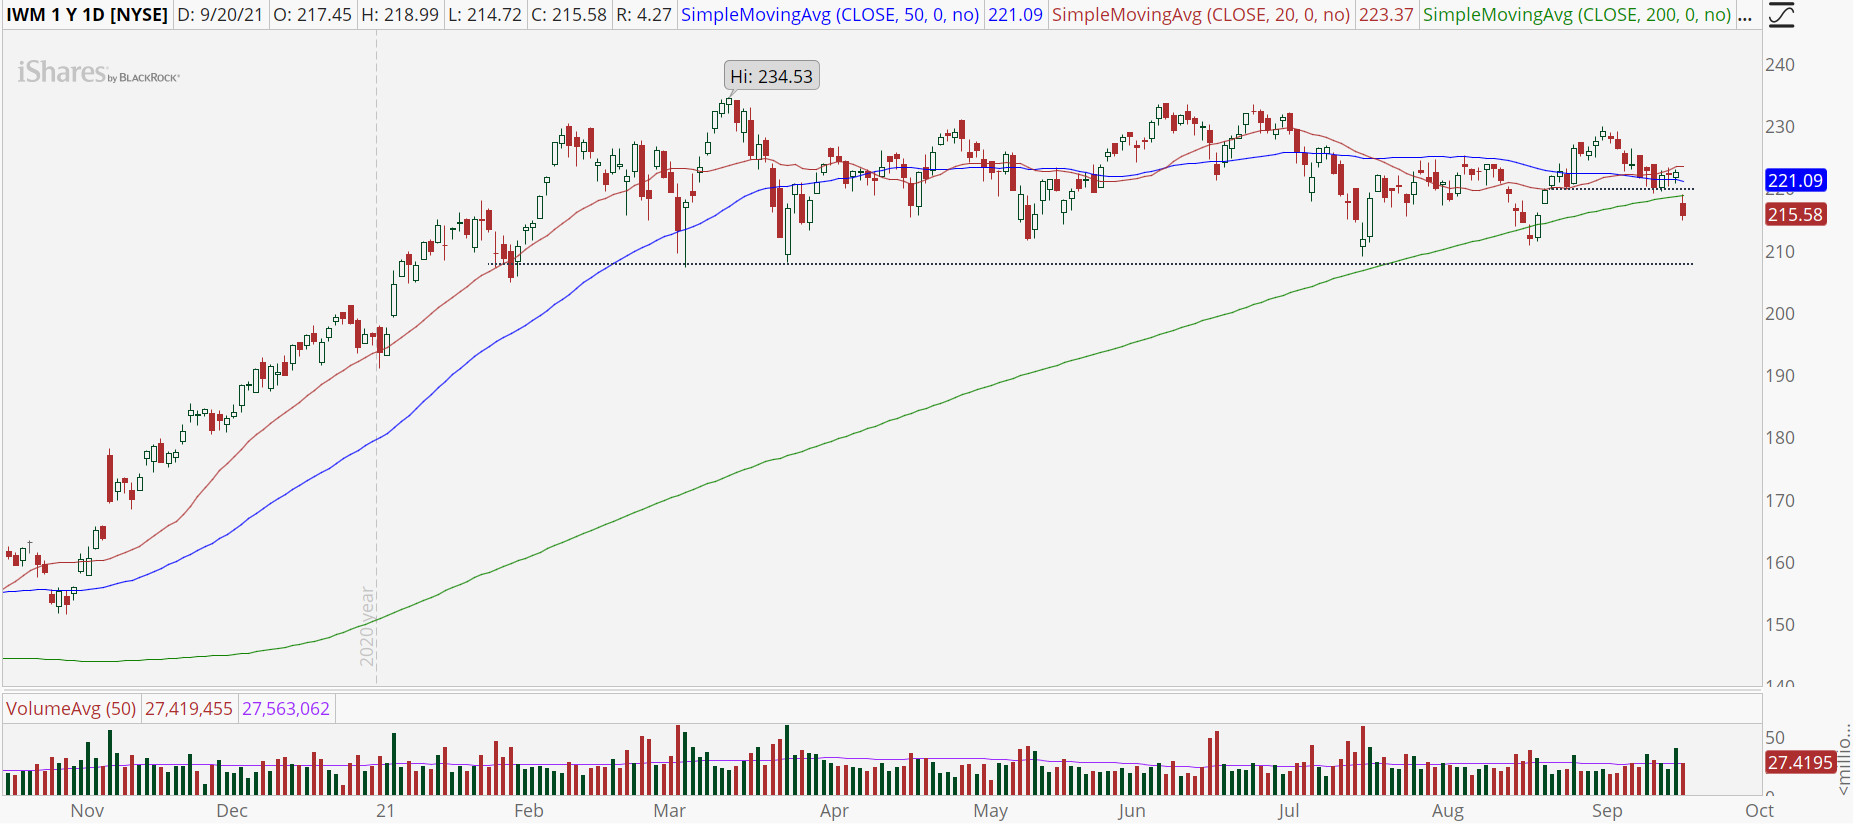 iShares Russell 2000 ETF (IWM) stock chart with break of 200 MA